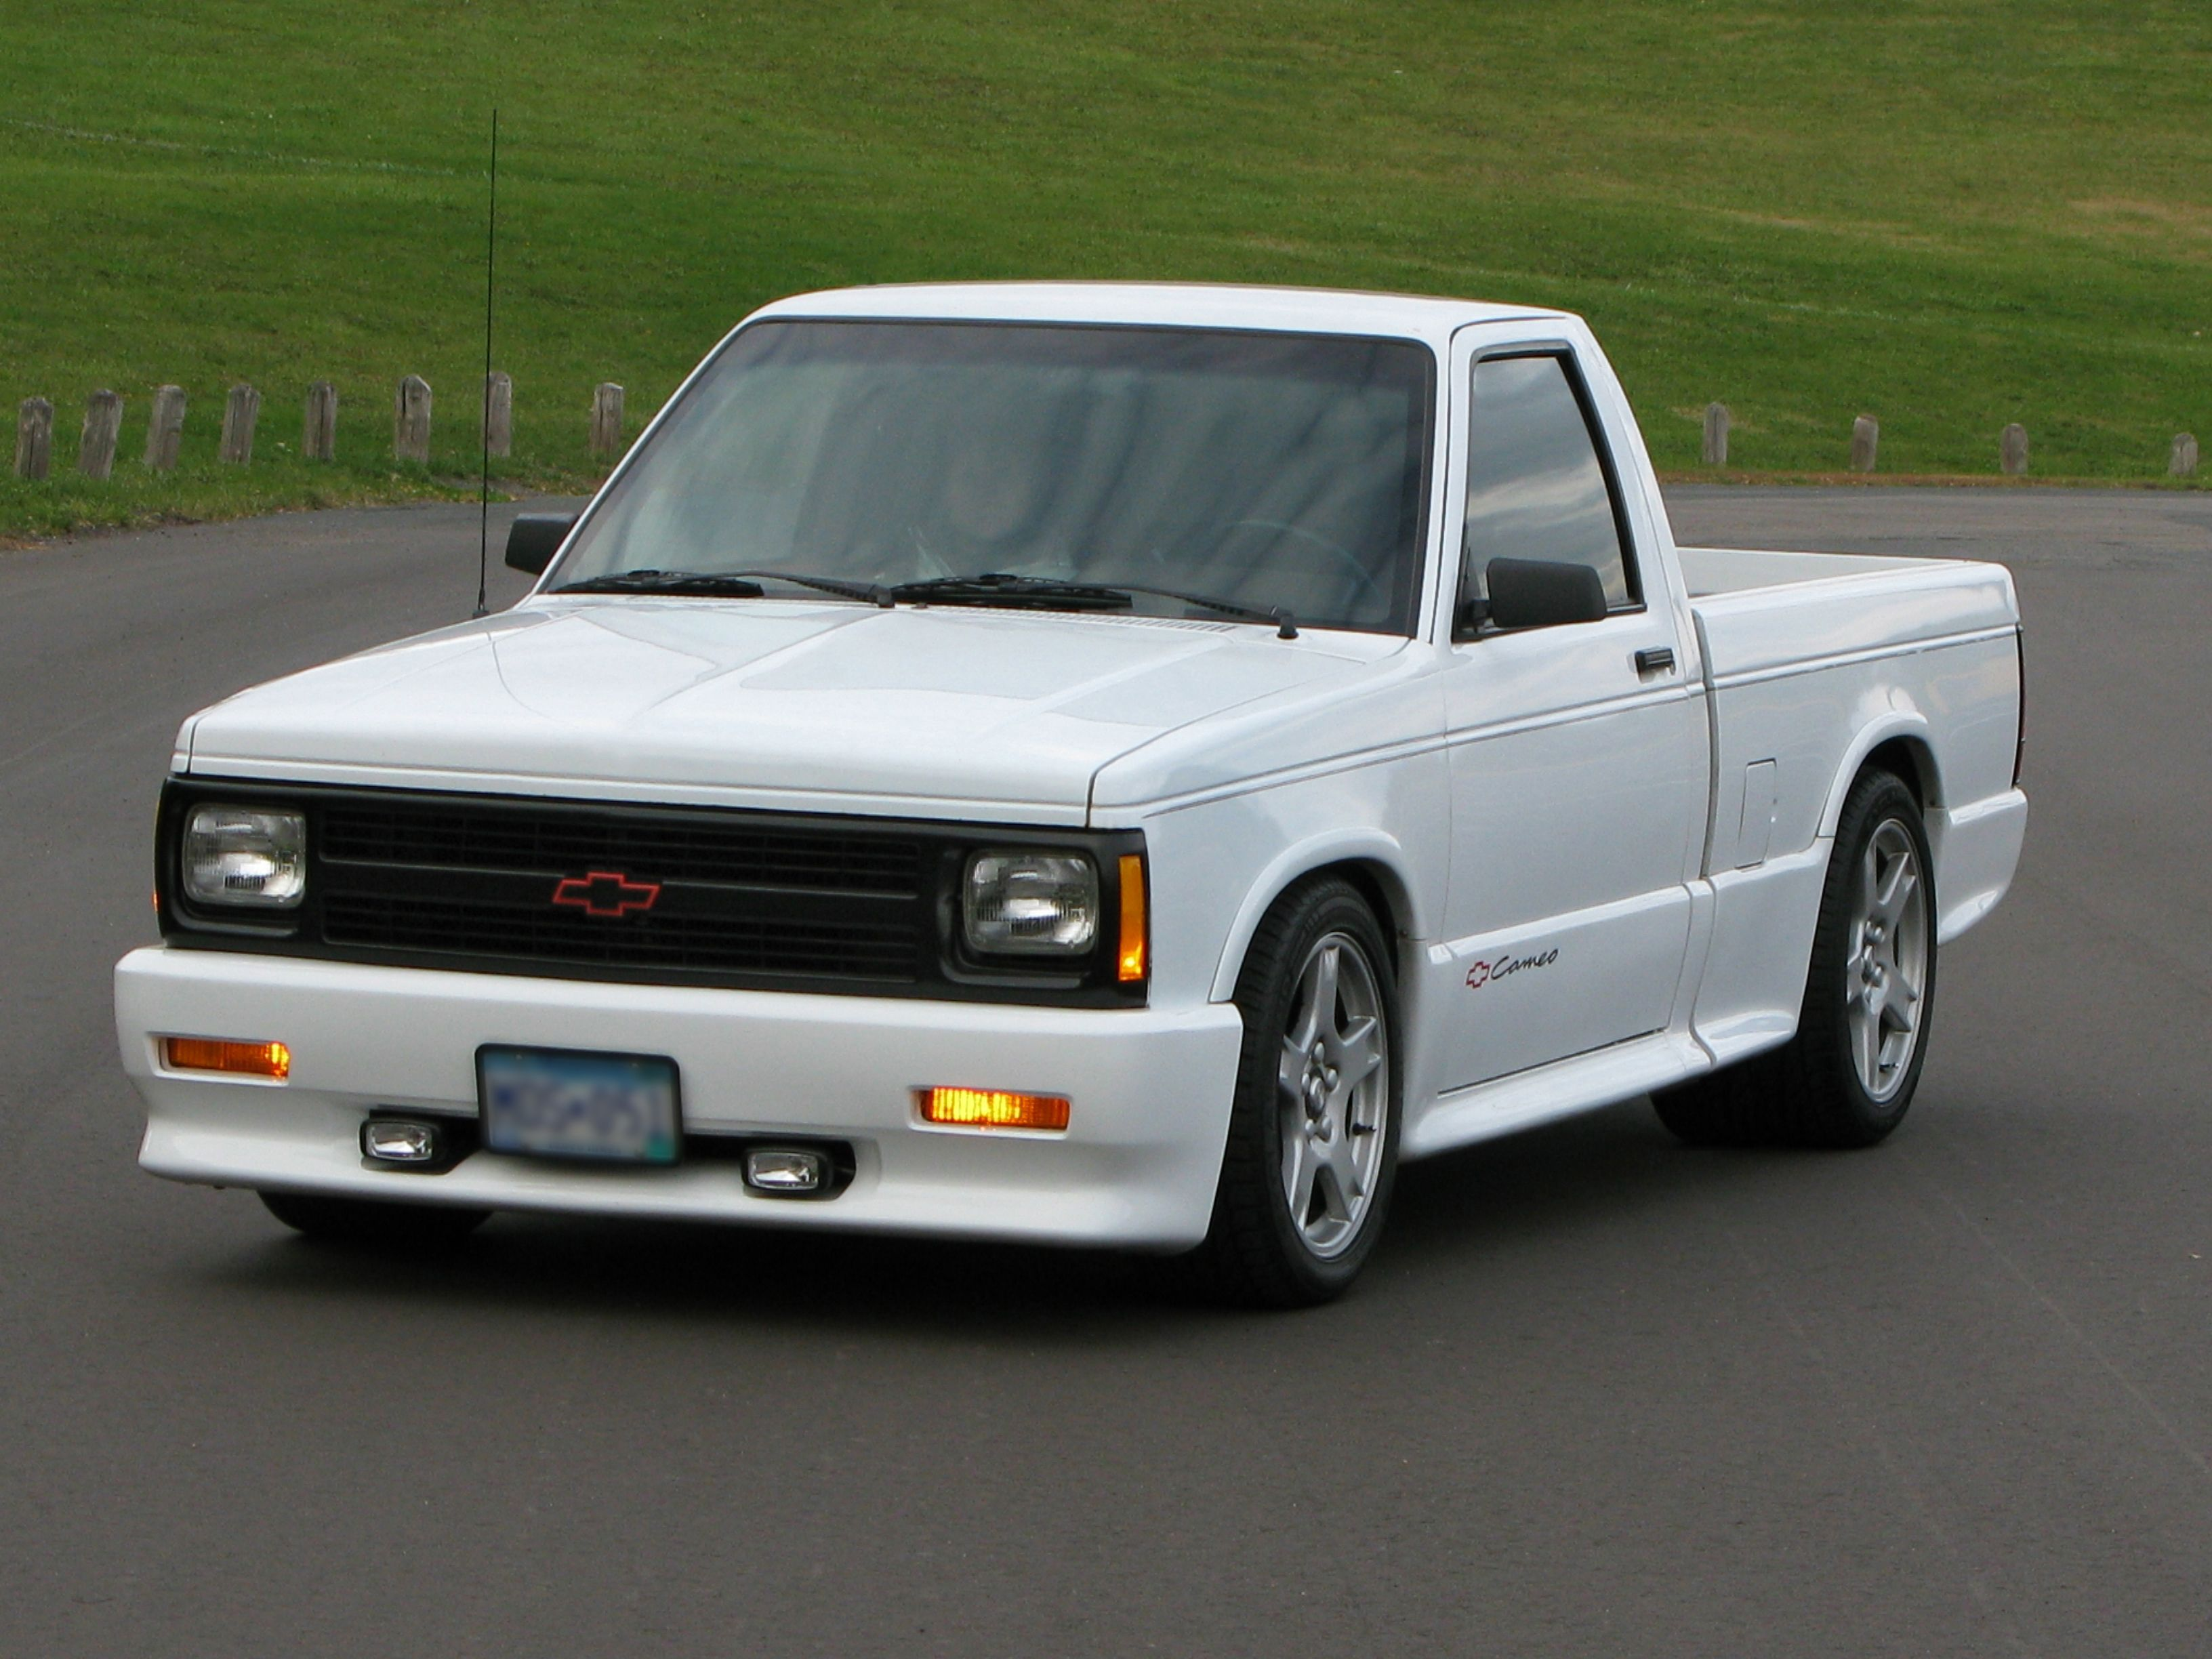 1991 s10 cameo chevy s10 gmc s15 pickups pinterest chevy s10 cars and small trucks. Black Bedroom Furniture Sets. Home Design Ideas